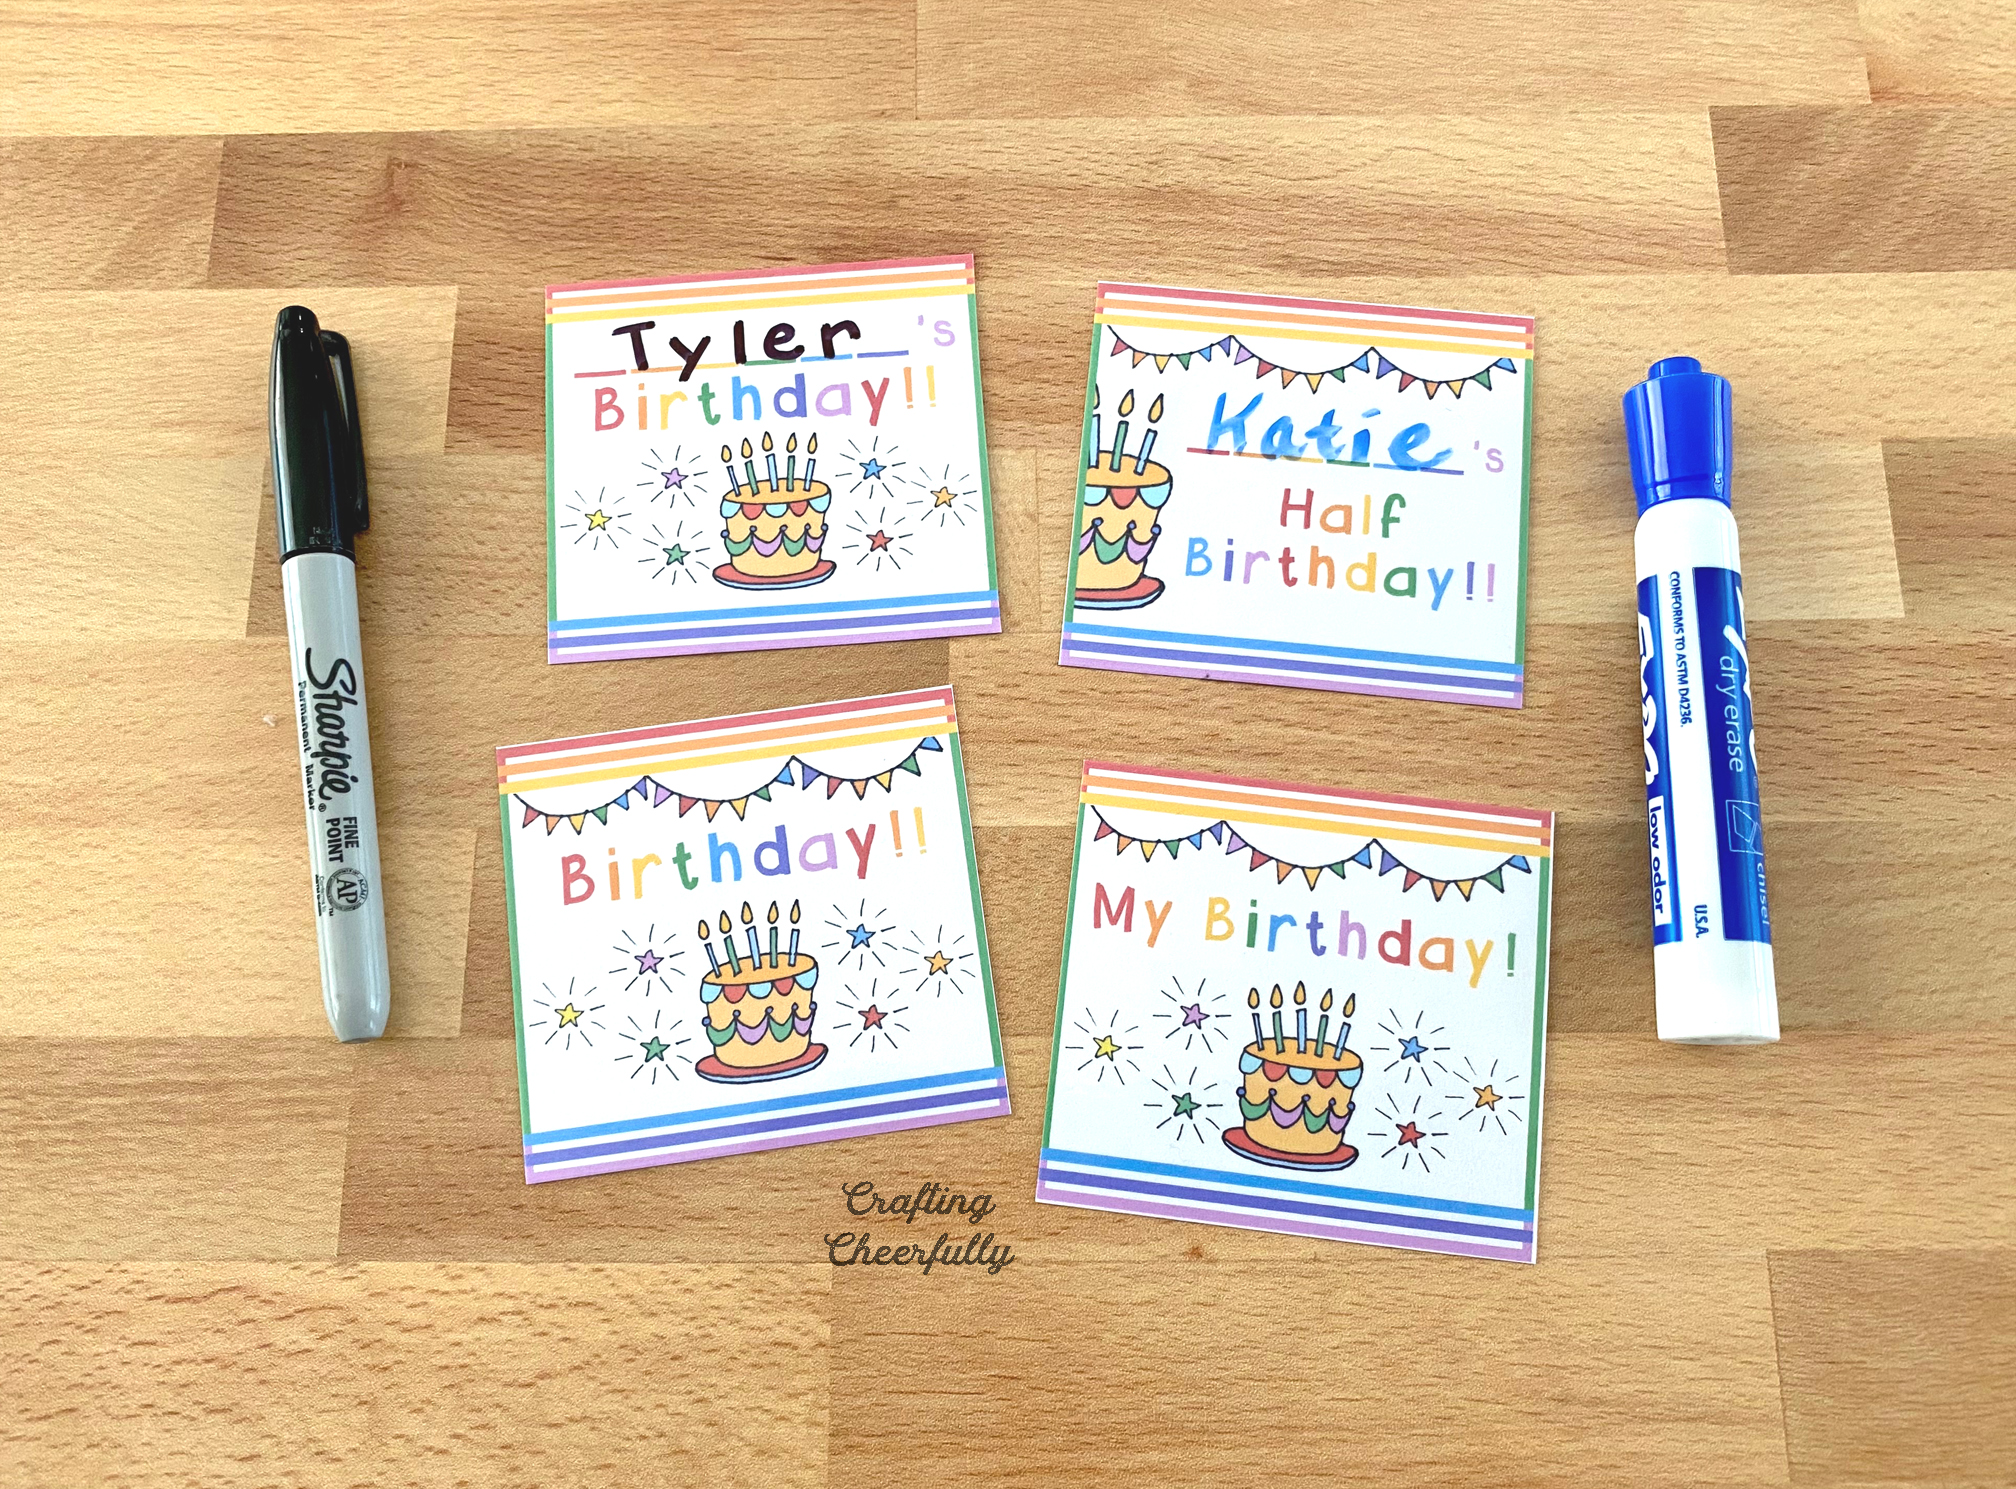 Birthday calendar cards with names written on them.